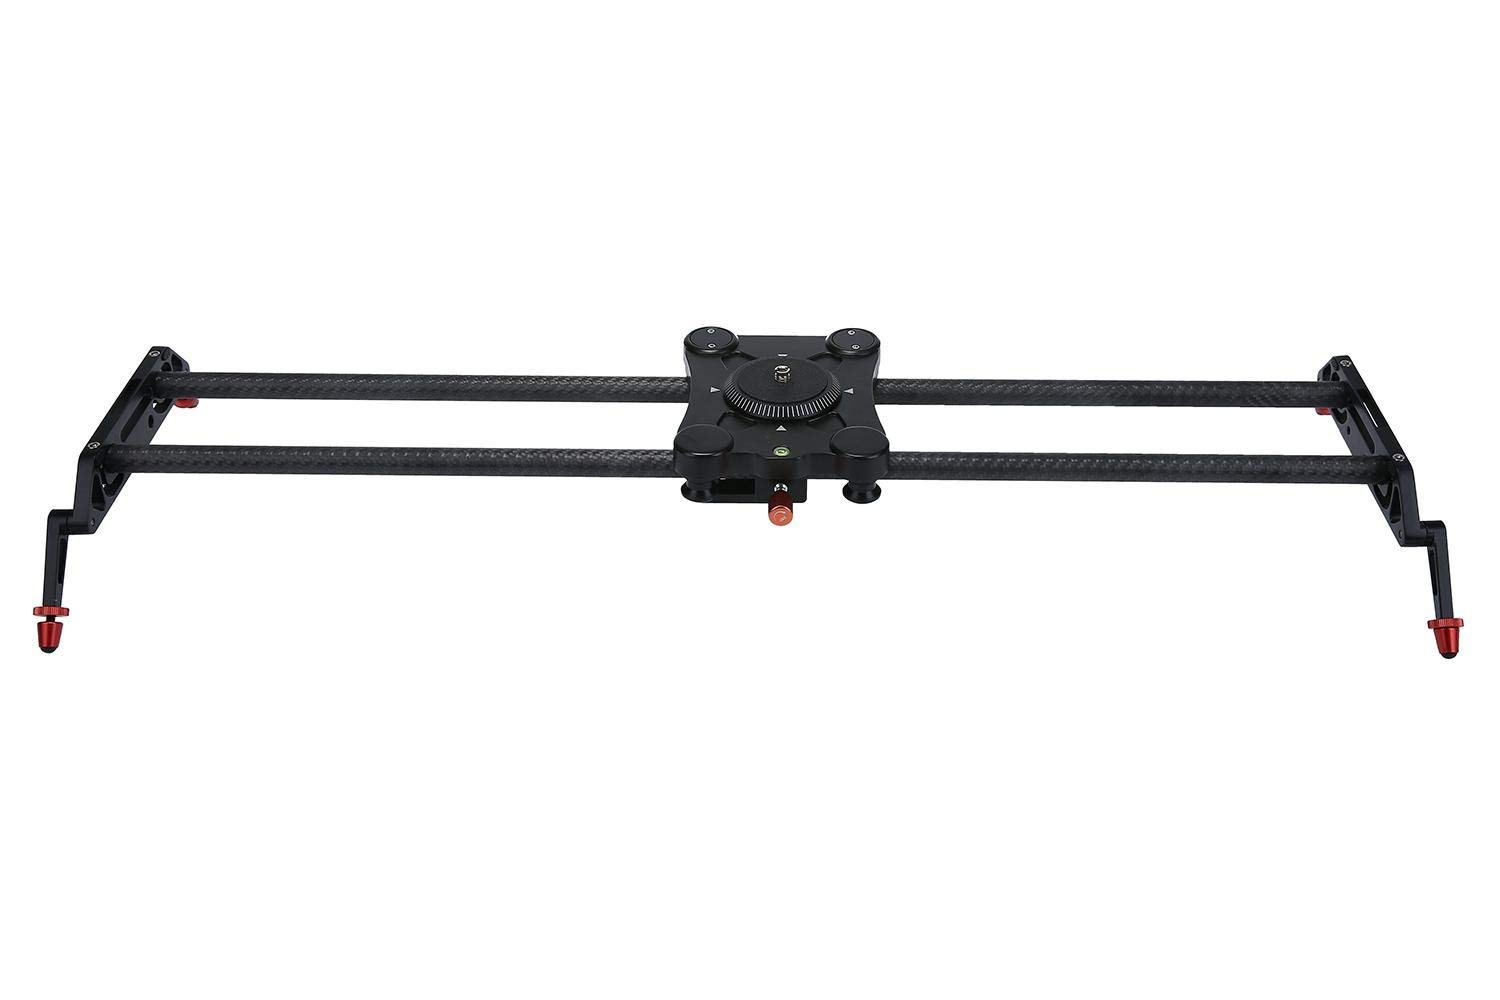 KOBWA 80cm Length Carbon Fiber Material GP-80Q Ball Bearing DSLR Camera Rail Track Dolly of Video Stabilization System for Camcorders (Black)